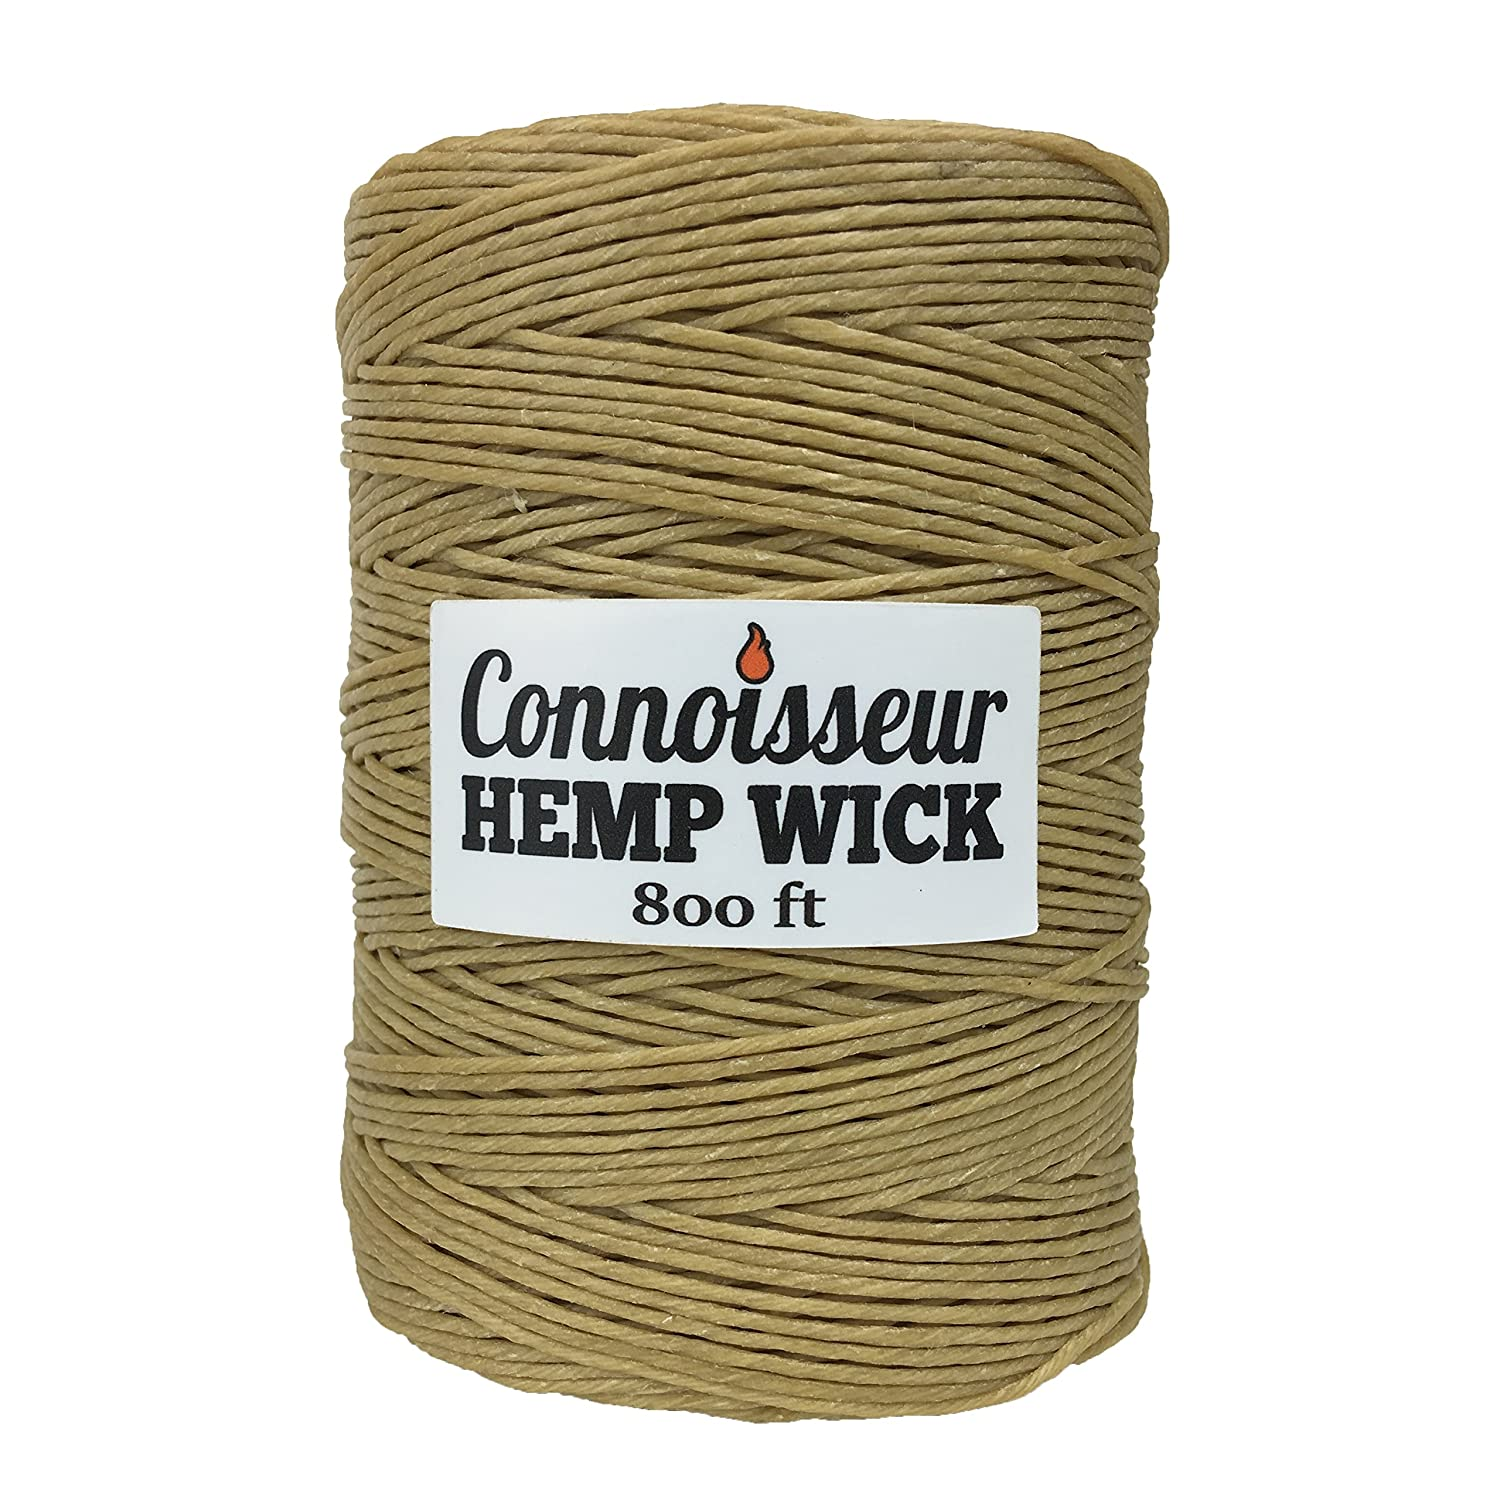 Natural Hemp Wick Spool (800 FT) Natural Beeswax Coating | Slow Burn, Long-Lasting Refill | DIY Tea Lights, Candle Making, Tapers | Standard Dispenser Use | 1.0mm TopShelfCompany 800FT